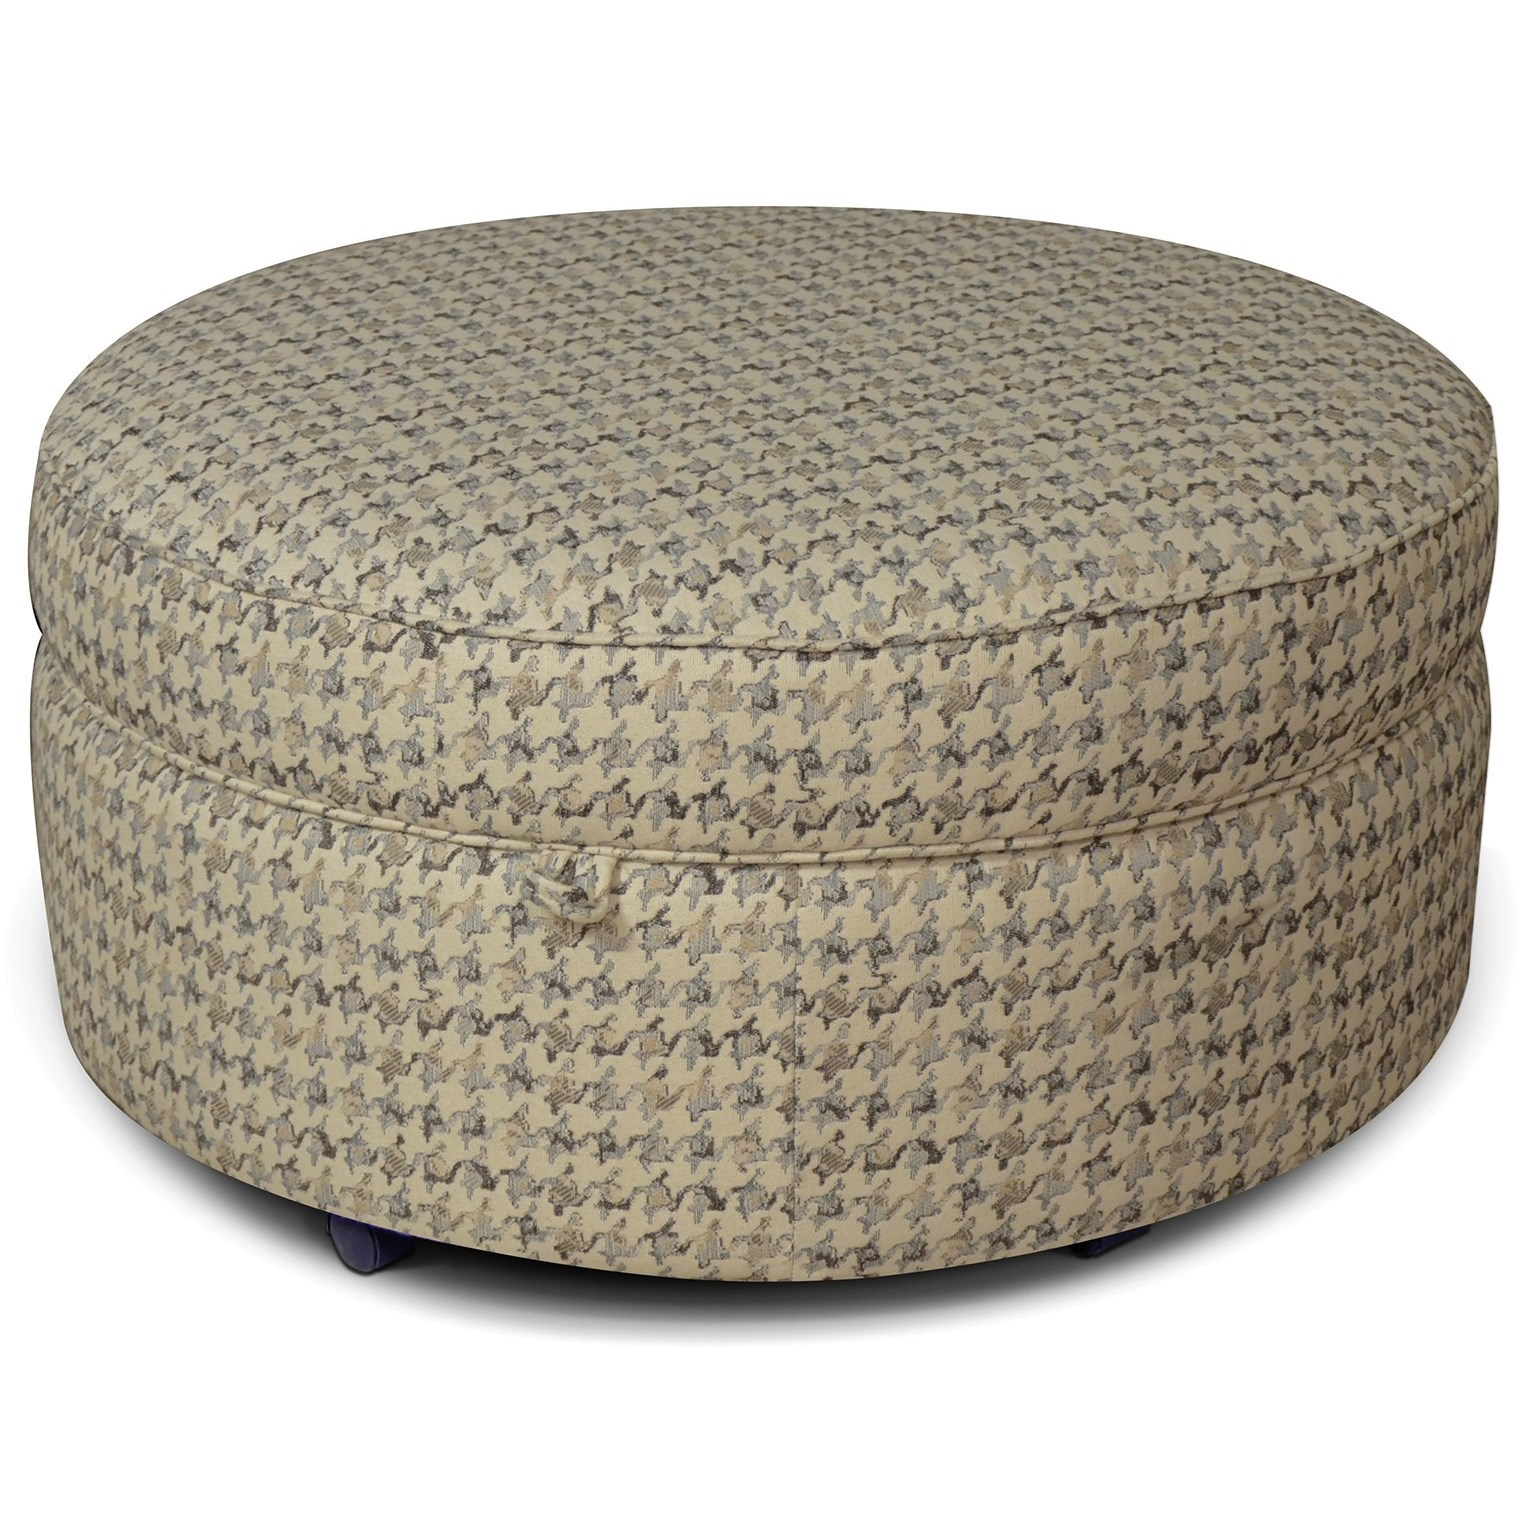 Midtown Upholstered Storage Ottoman by England at Godby Home Furnishings